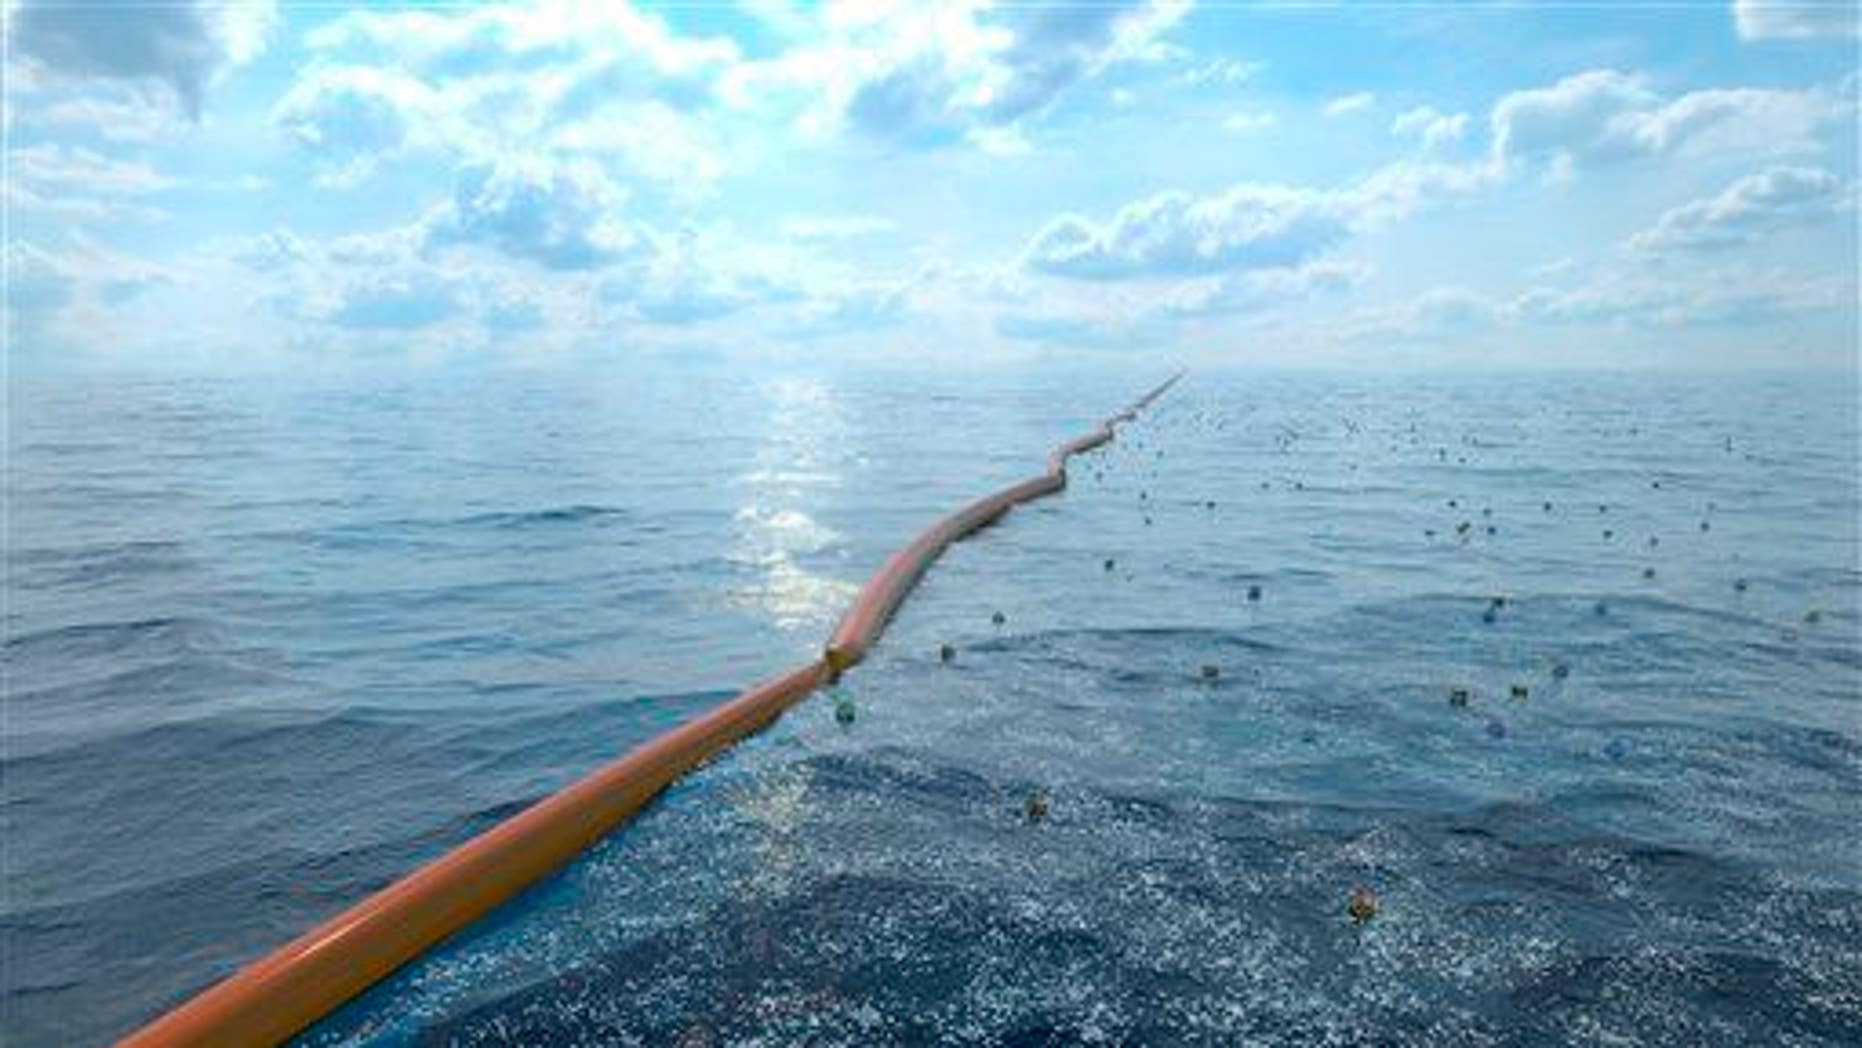 This computer-generated artists' illustration provided by The Ocean Cleanup shows how a floating barrier and collection station might appear in a project to collect plastic garbage from the world's oceans.